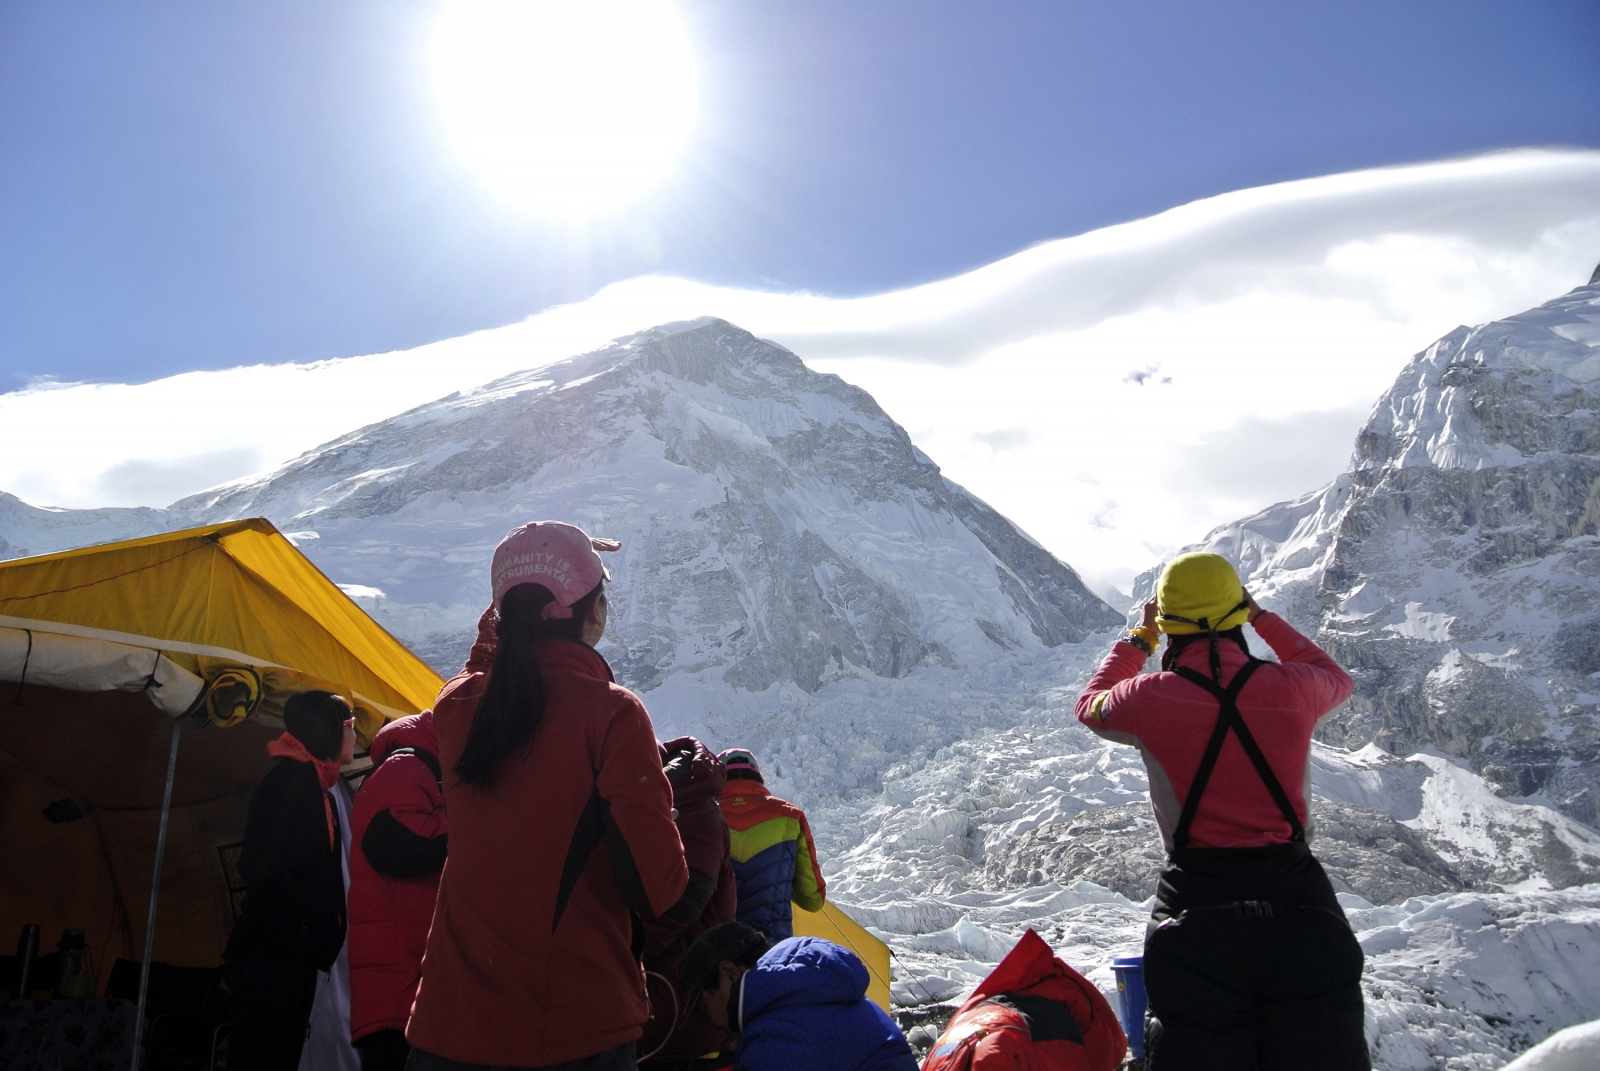 Researchers studying Himalayan mountain climbers say some are less likely to reach the top, depending on their cultural background